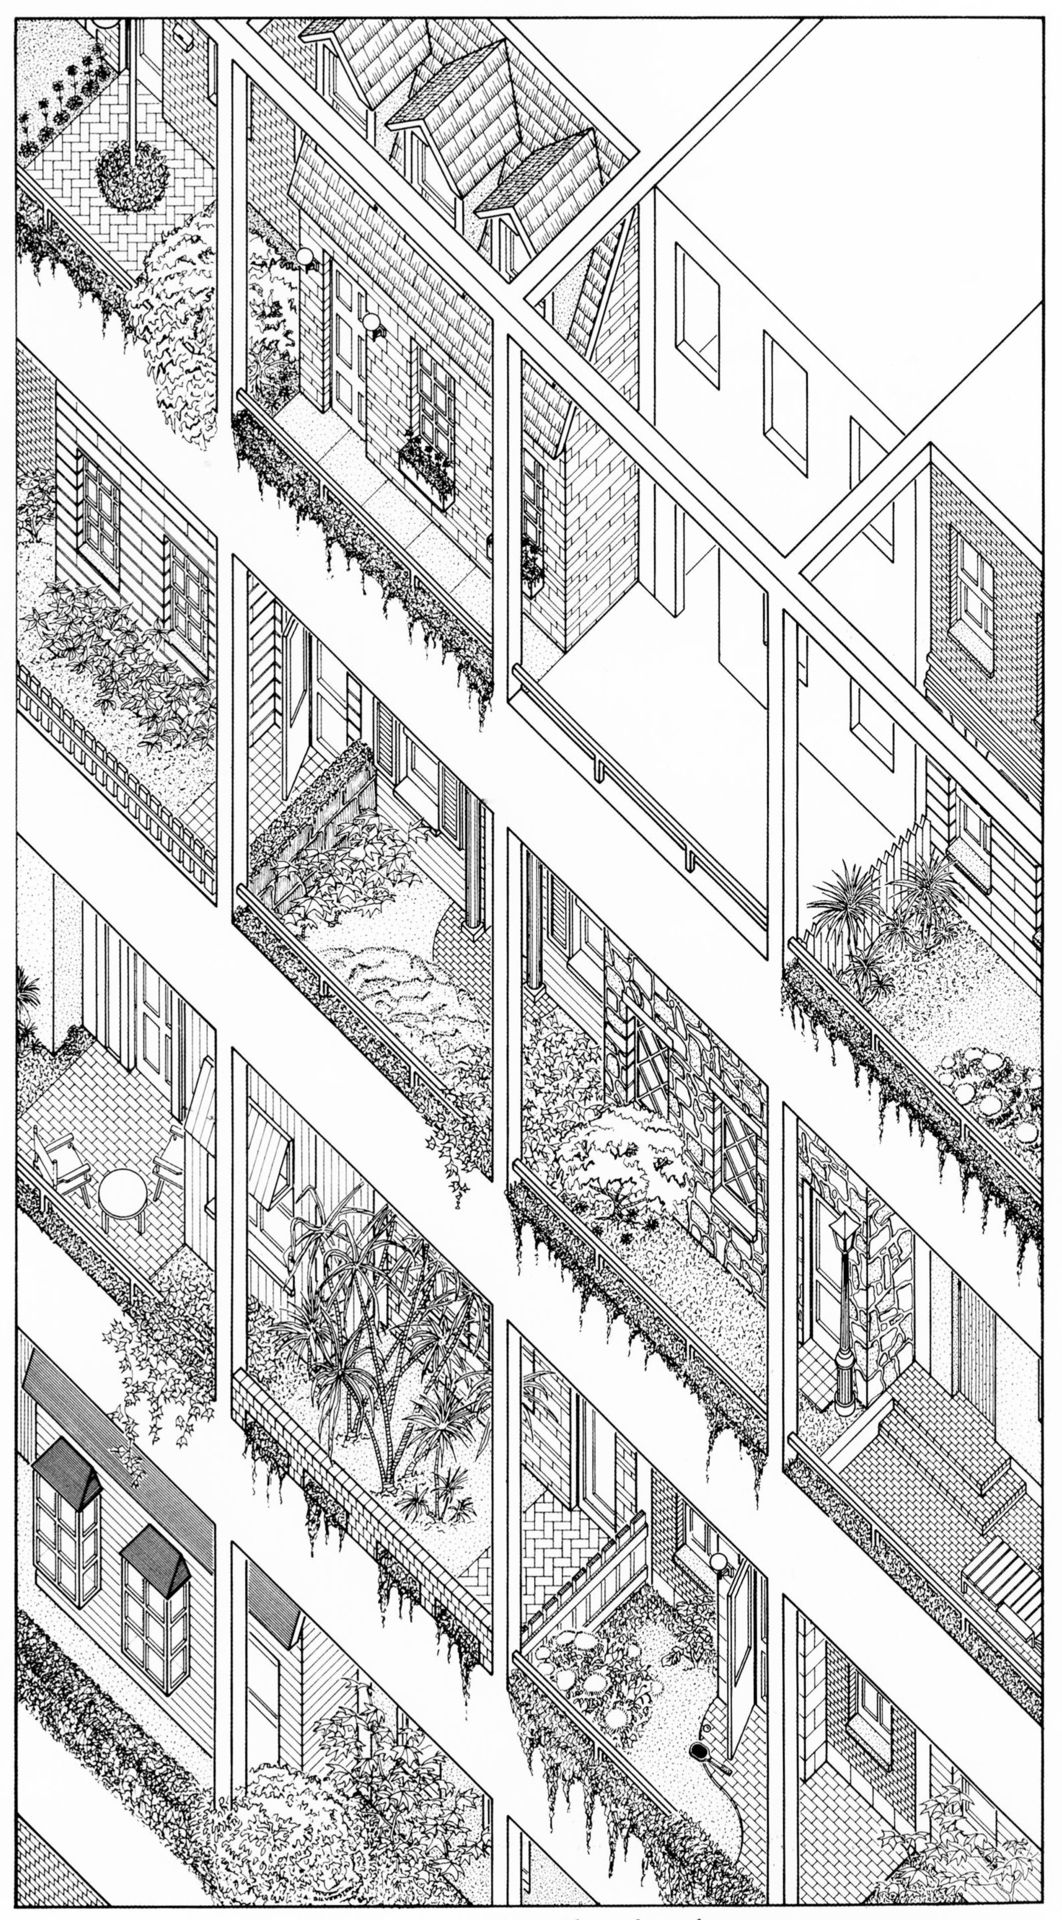 James Wines/SITE, High Rise of Homes, Catalog of House Units, Major Urban Center, 1981 architectural-review